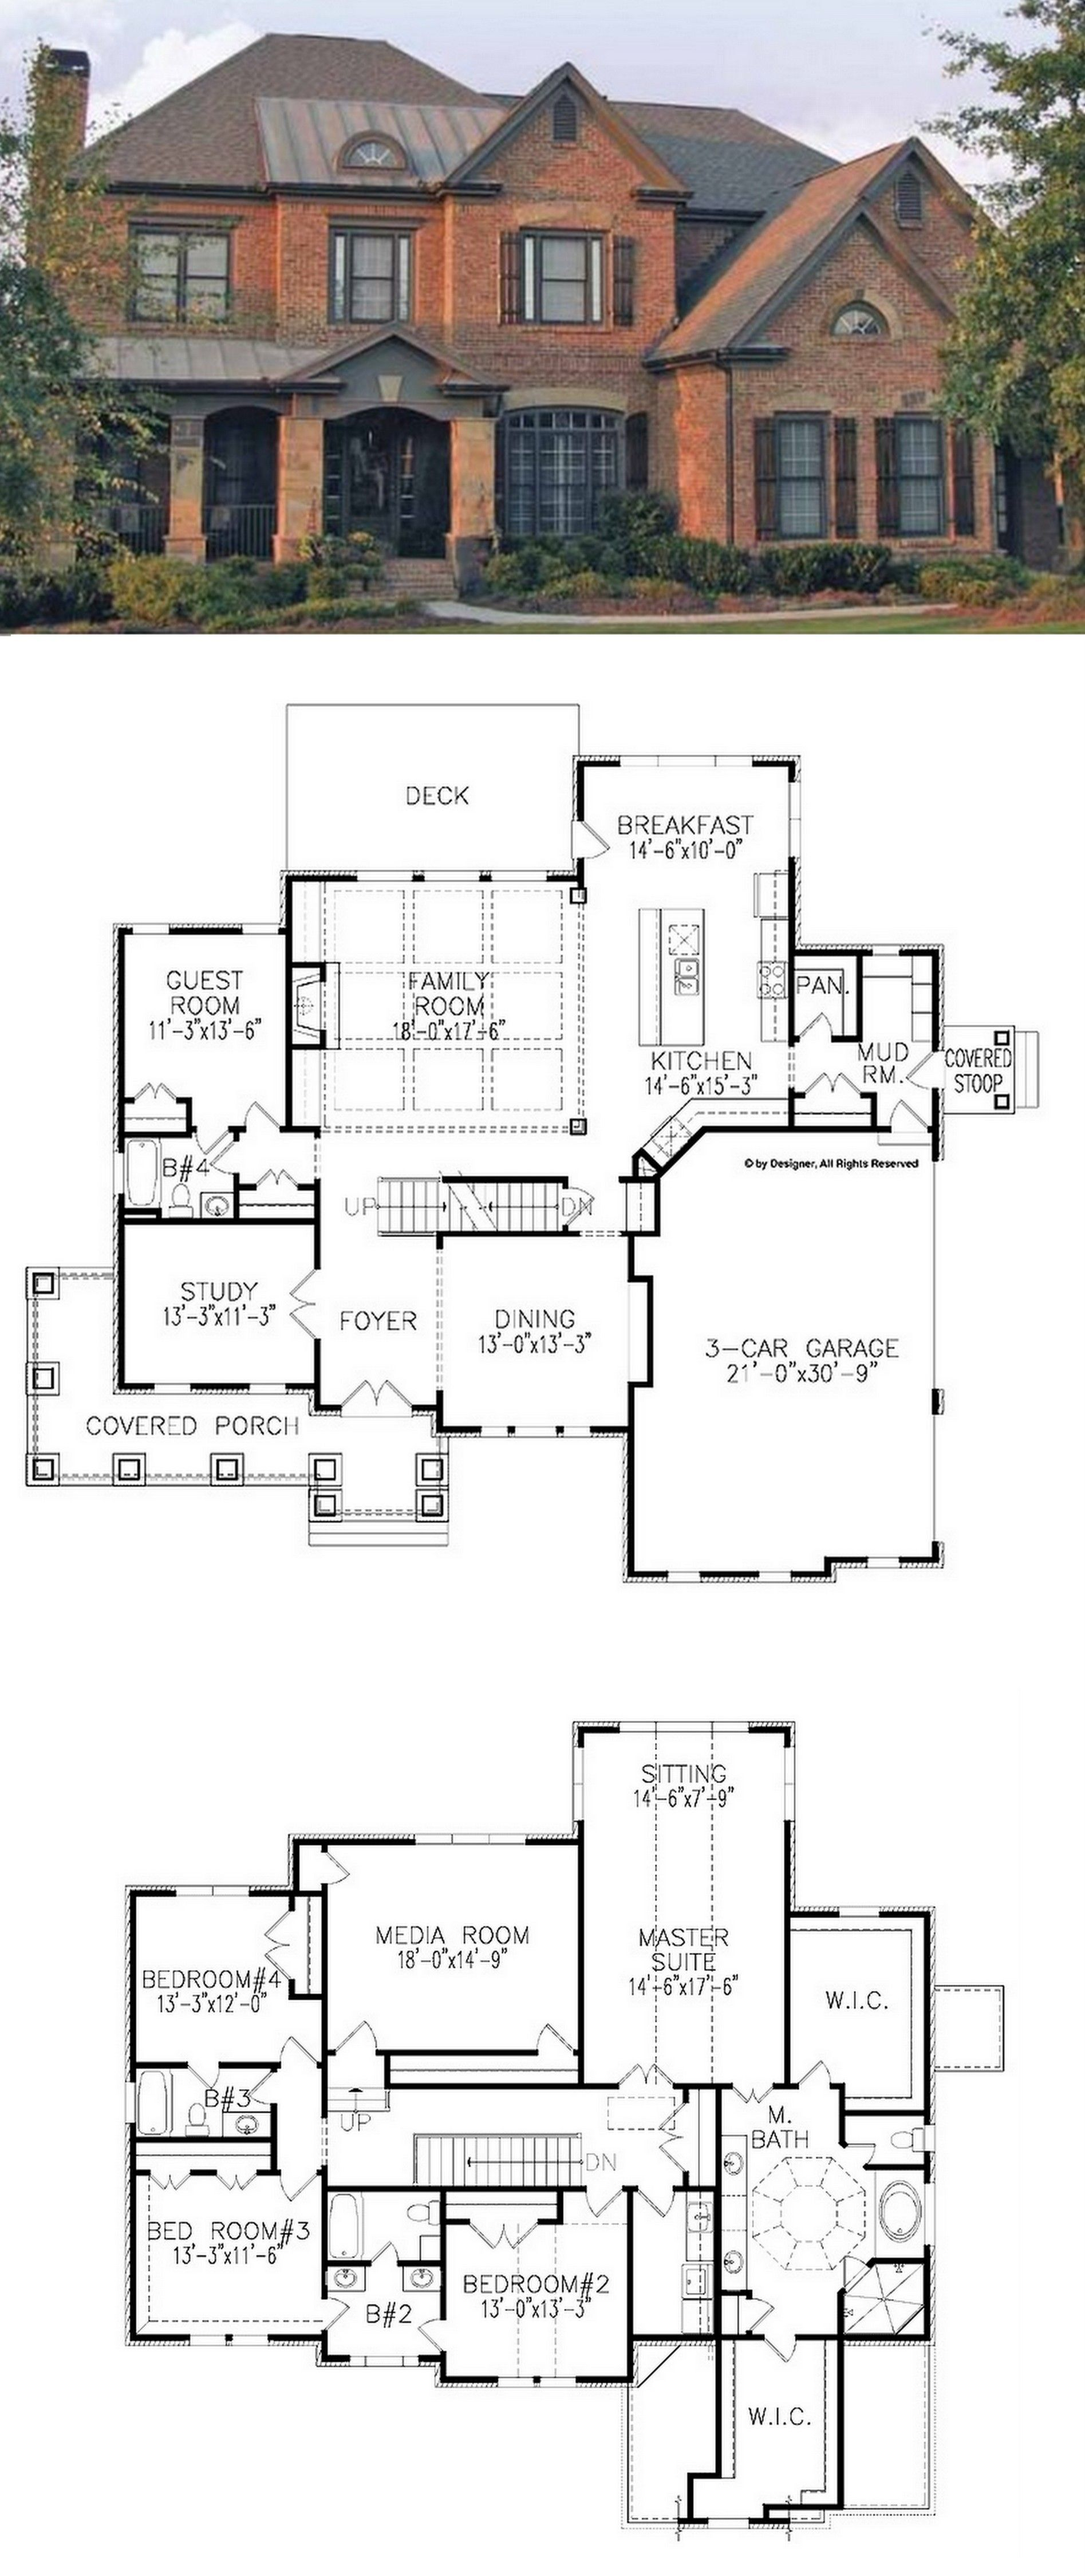 Traditional House Plan with 3962 Square Feet and 5 Bedrooms from     Traditional House Plan with 3962 Square Feet and 5 Bedrooms from Dream Home  Source   House Plan Code DHSW68890 Amazing plan